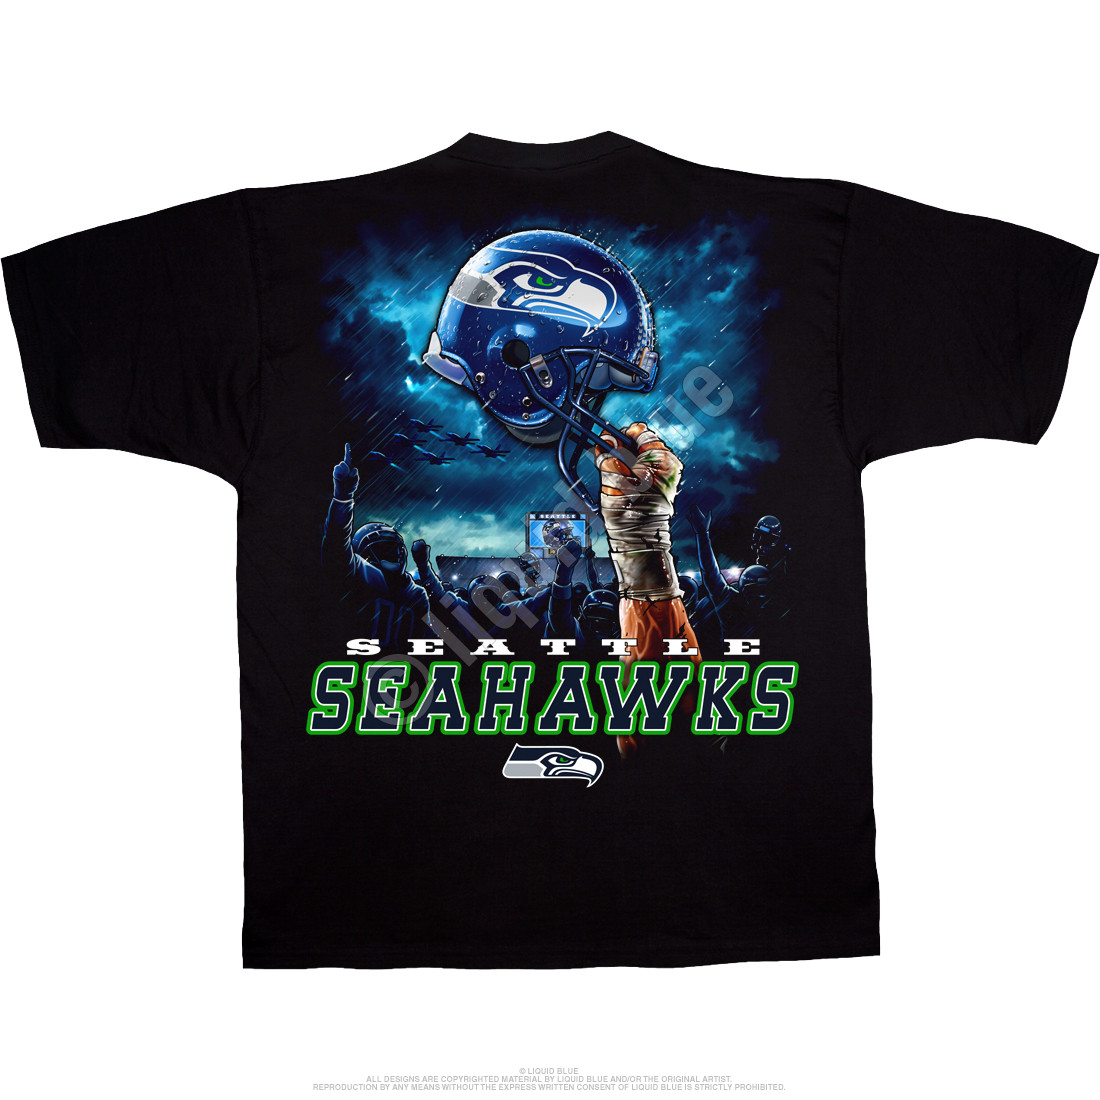 46bbefbaf6a4 NFL Seattle Seahawks Sky Helmet Black T-Shirt Tee Liquid Blue